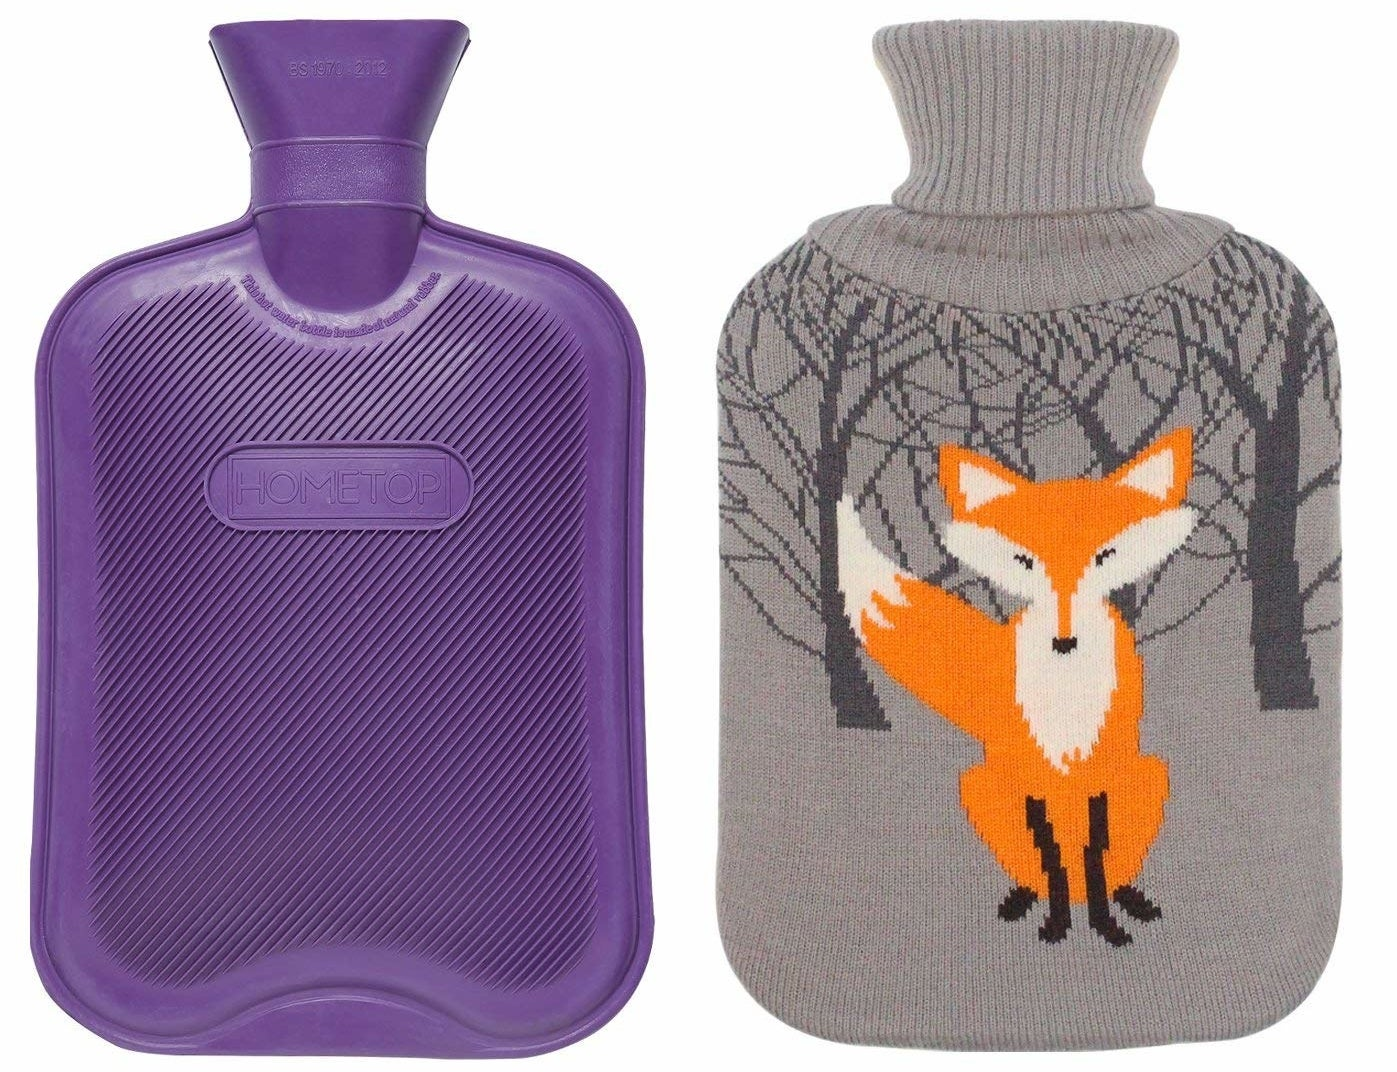 The purple hot water bottle with the grey knit cozy